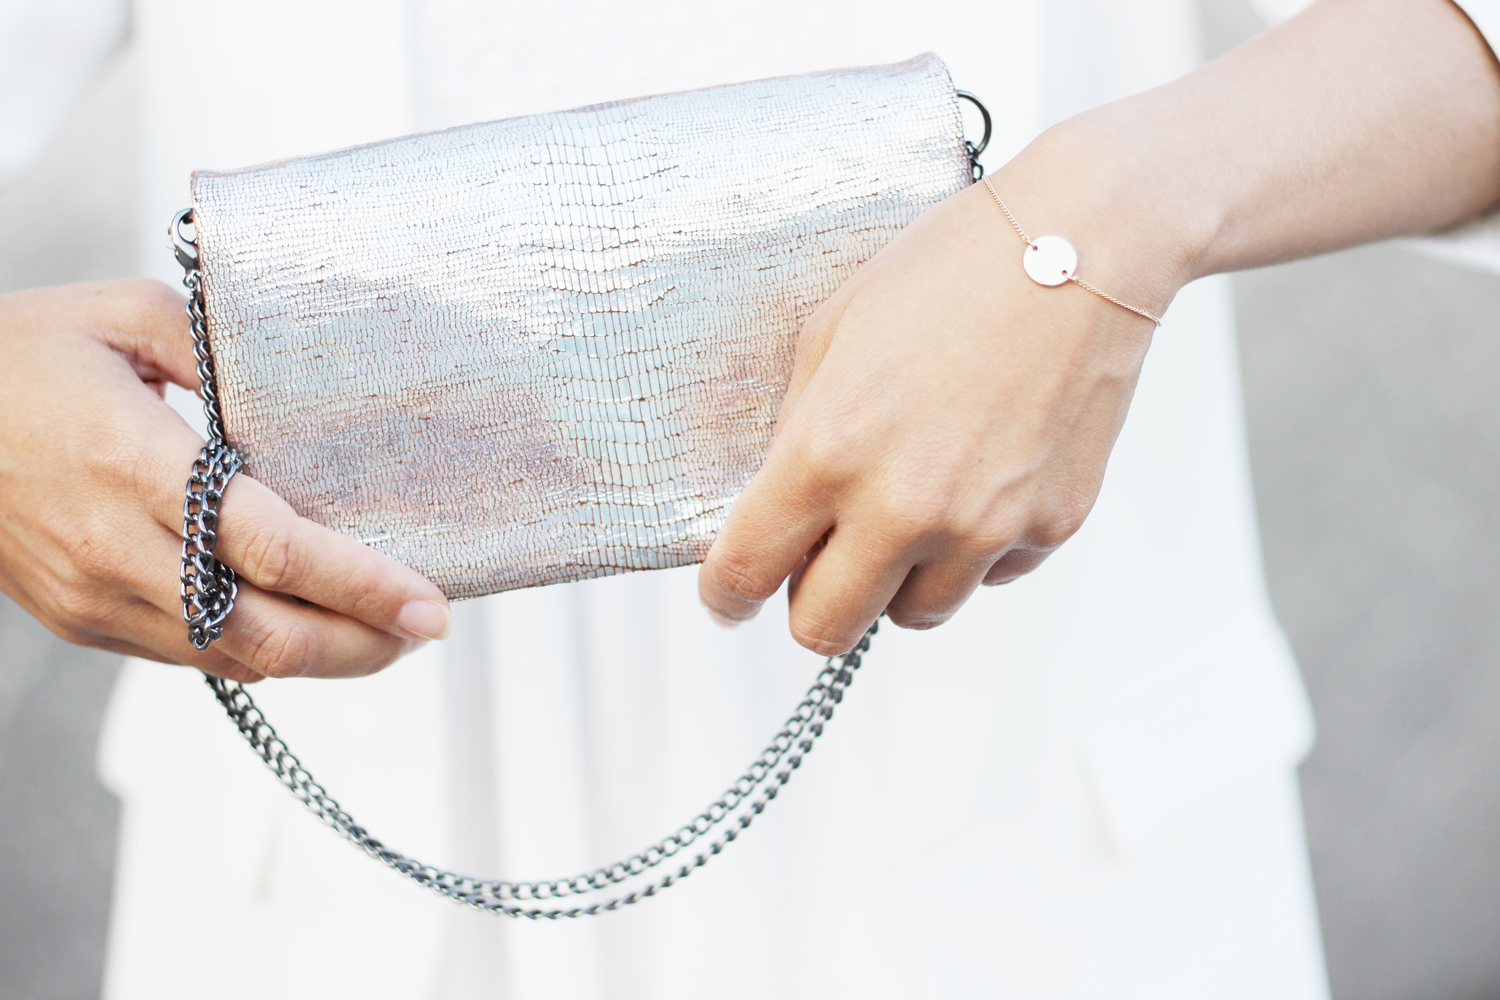 fatimayarie-clutch-silver-franca-euphoria-fashion-accessories-bracelet-hm-img_9535